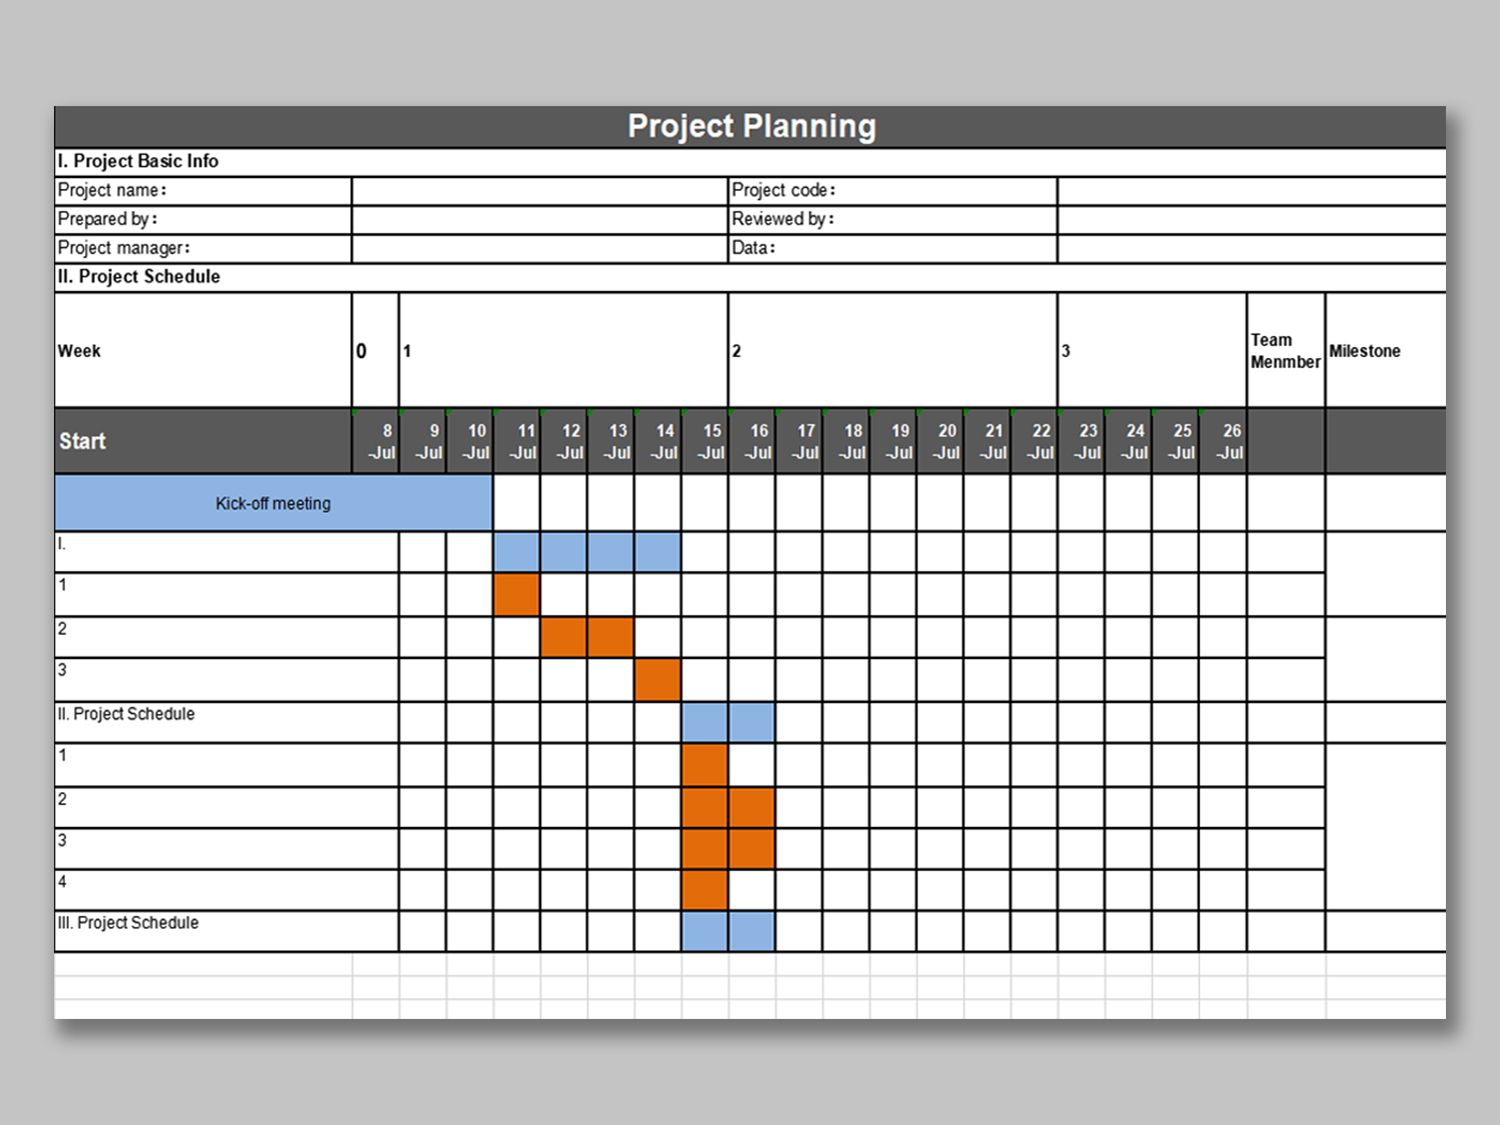 000 Amazing Project Planning Template Free Download Image  Software Management Plan Excel XlFull